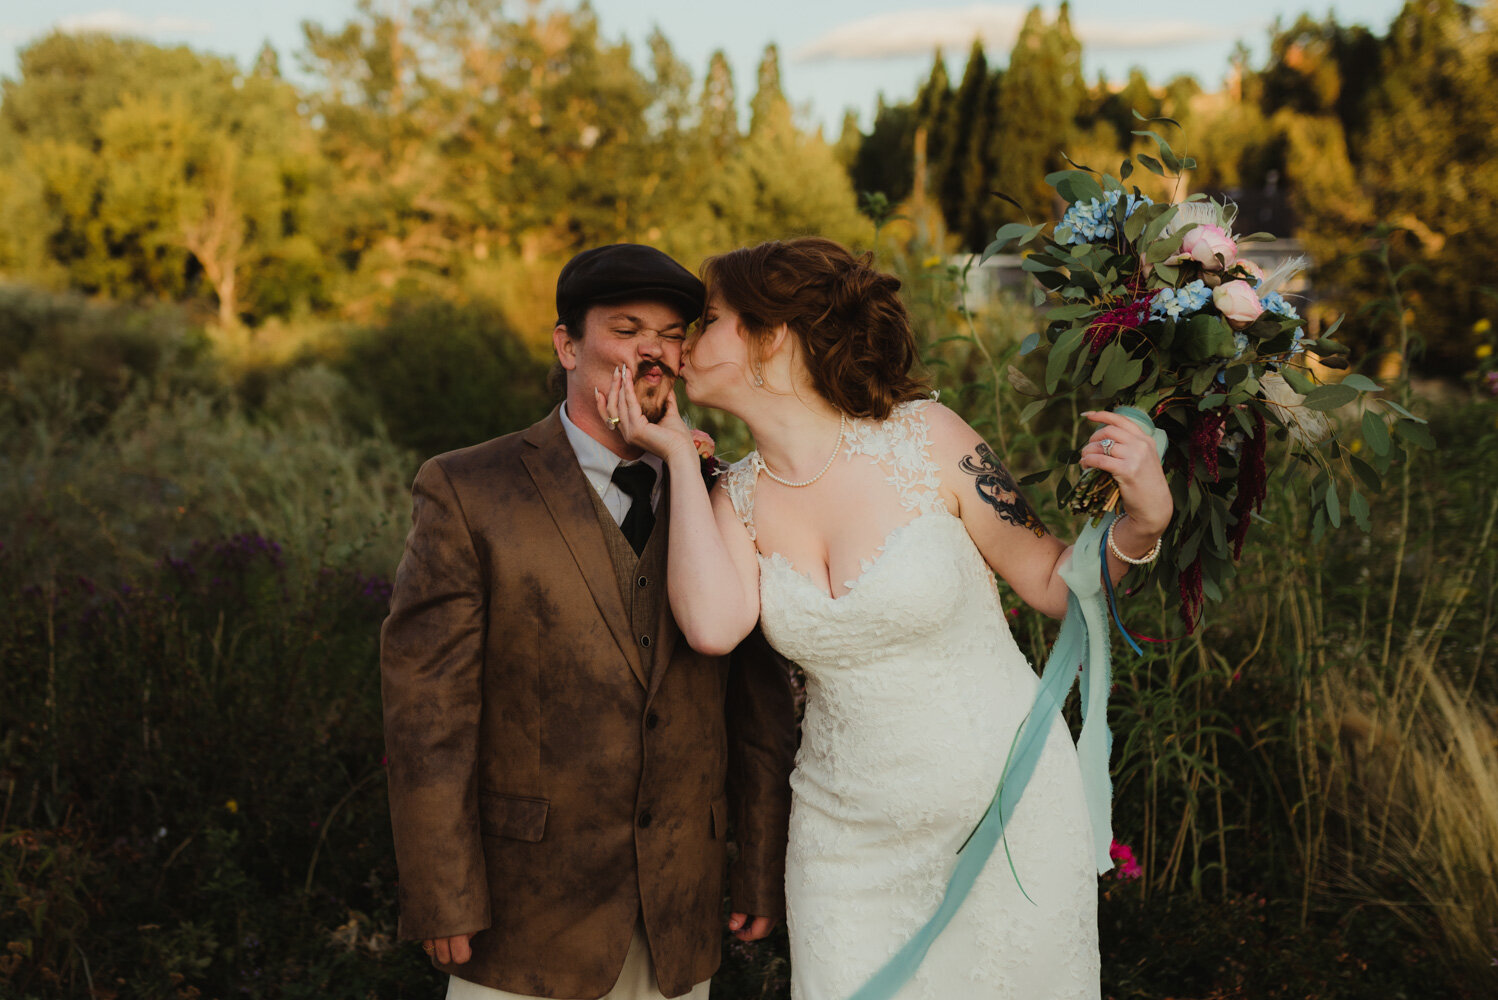 River School Farm Wedding, silly photo of couple playing around